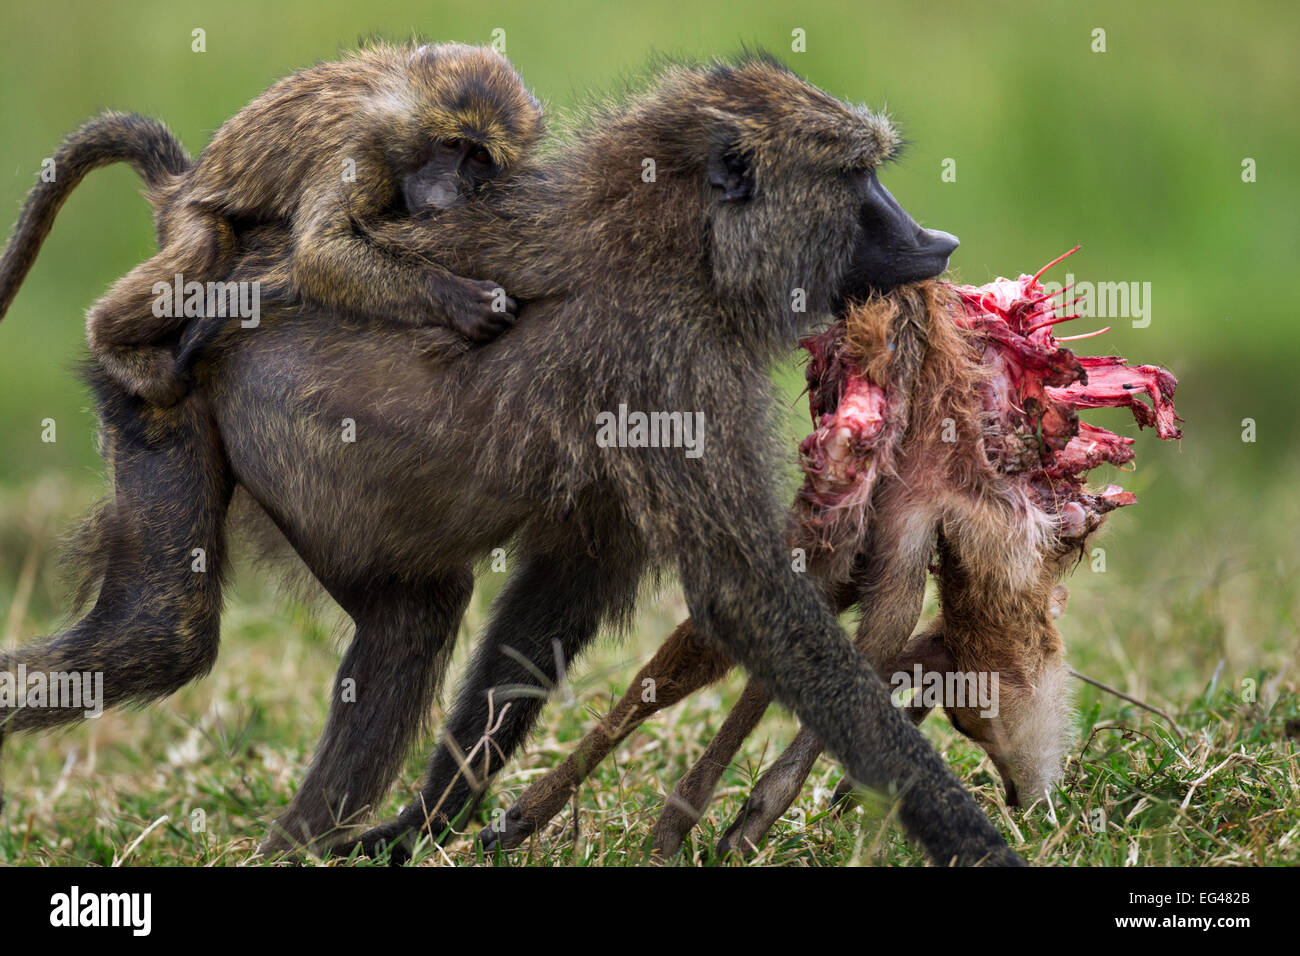 Olive baboon (Papio cynocephalus anubis) female infant on back carrying away gazelle carcass having taken it male. - Stock Image